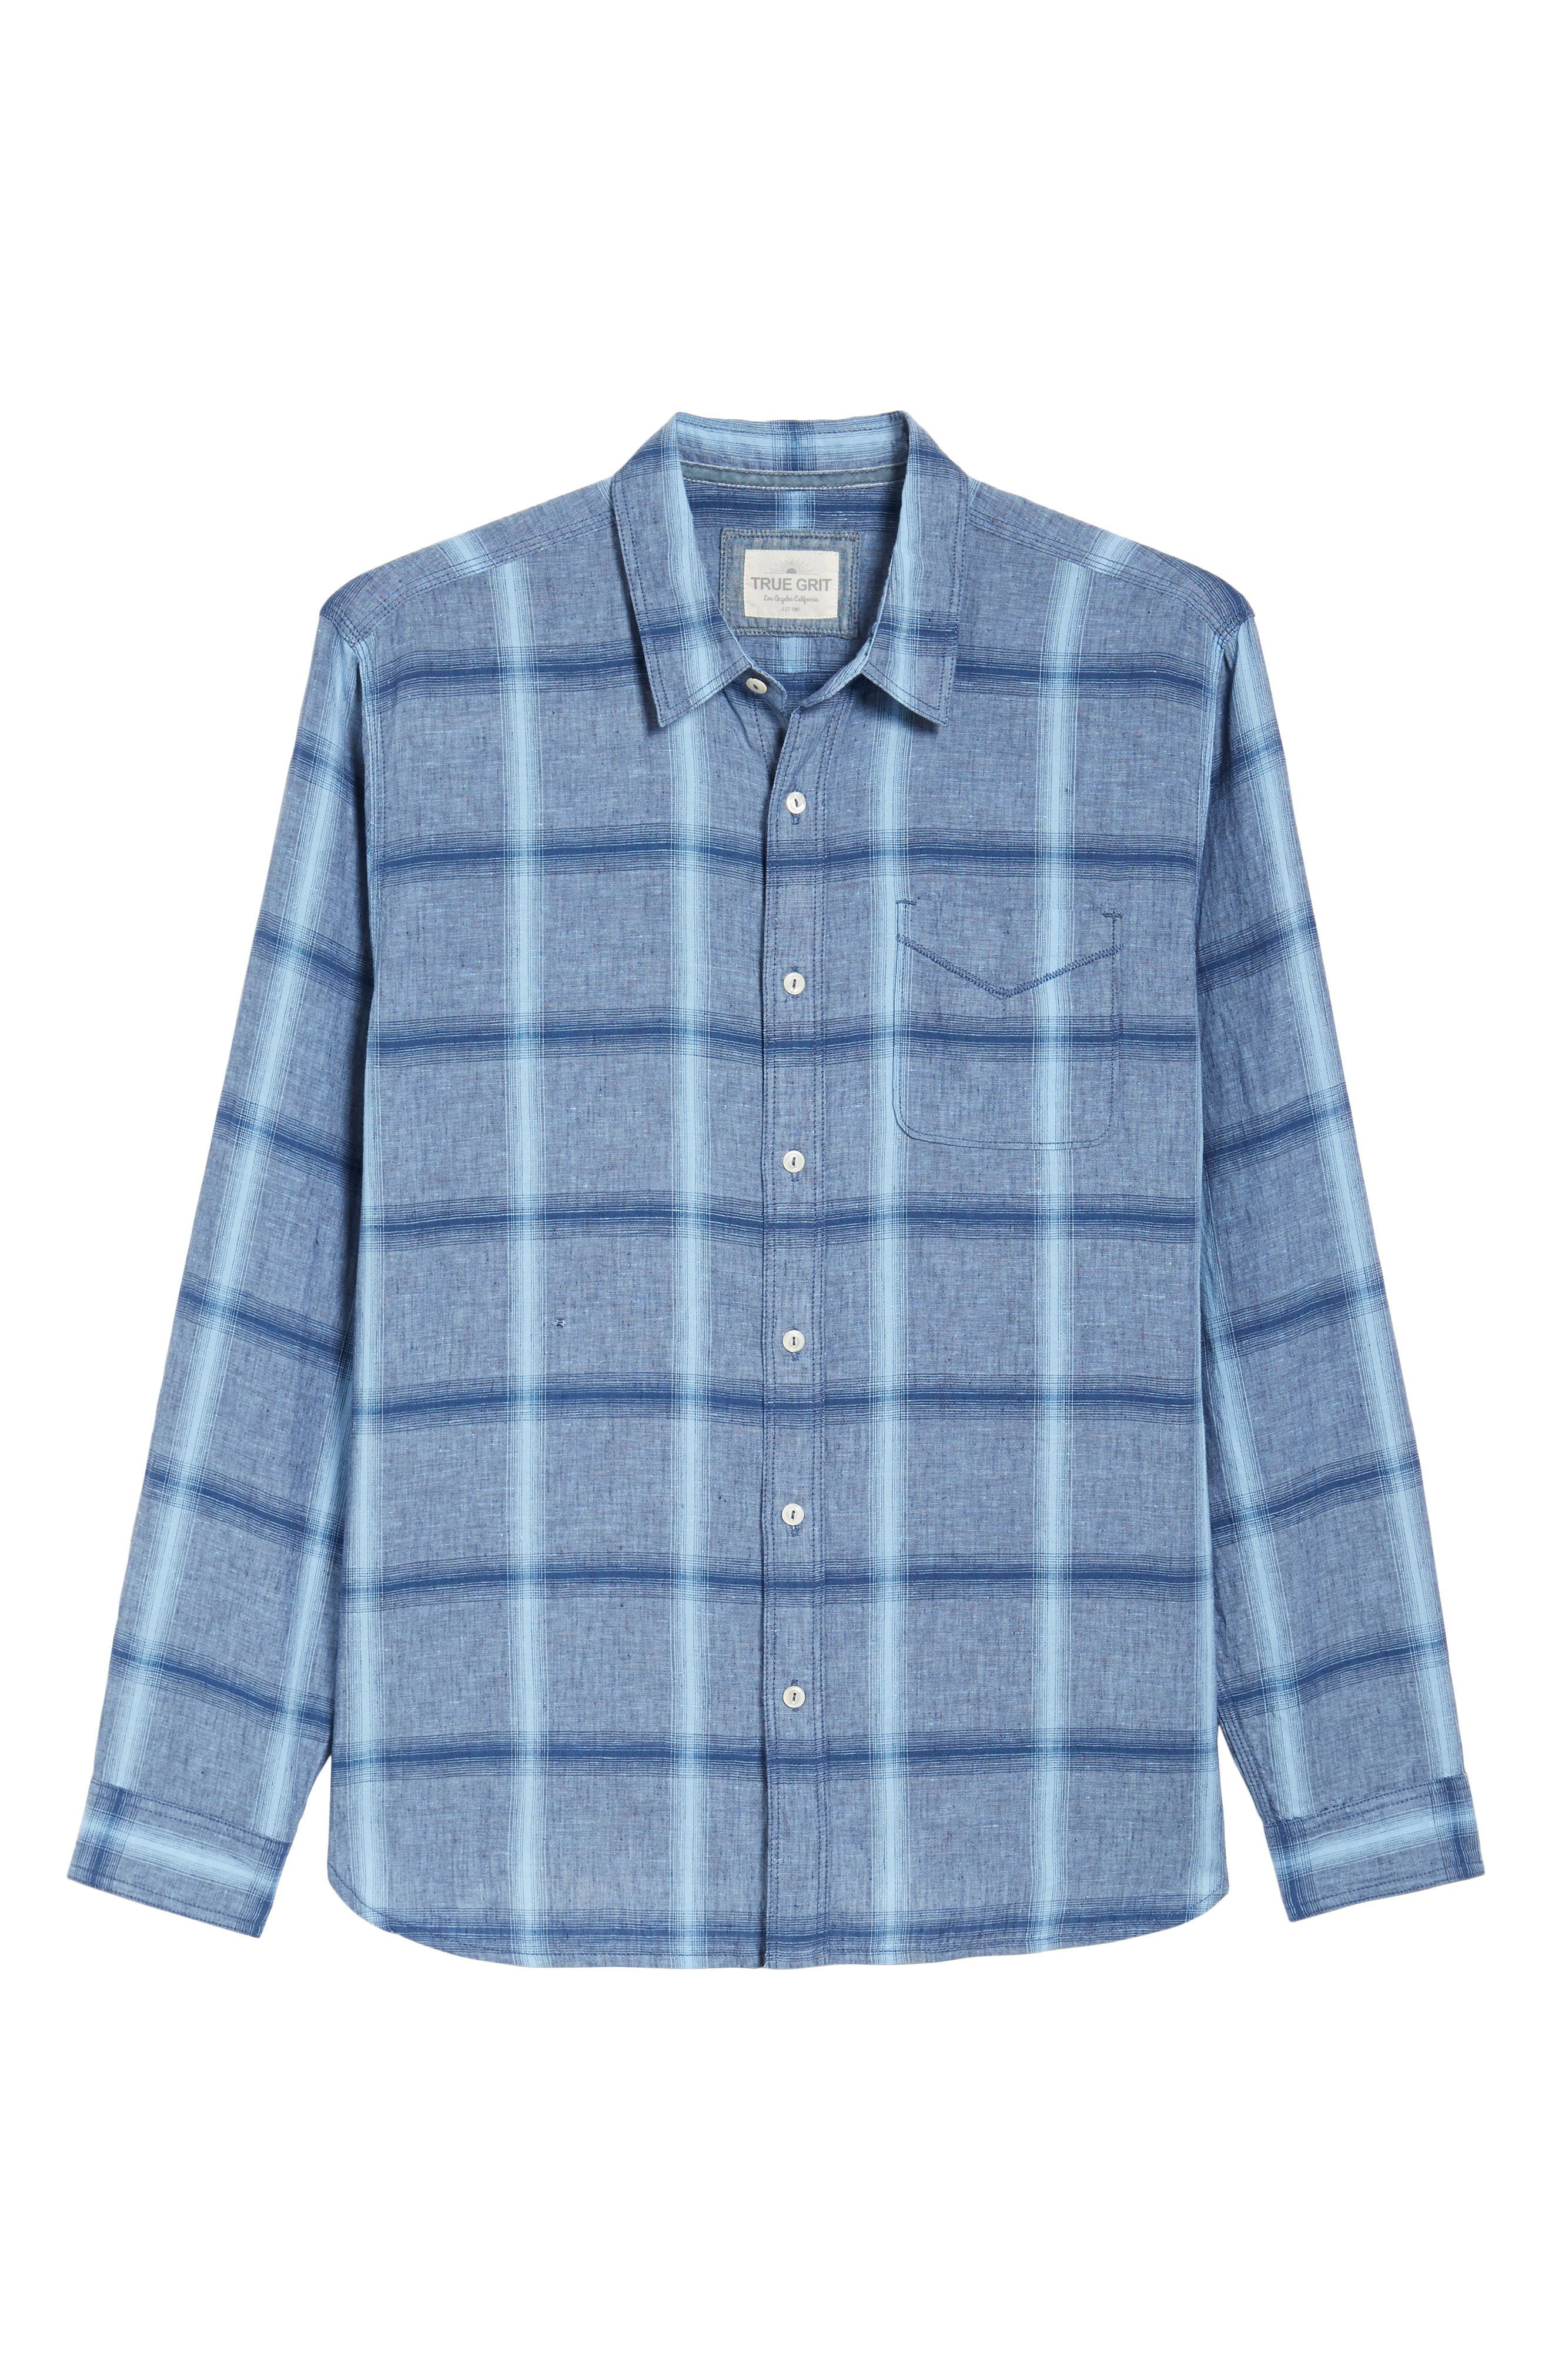 Rincon Plaid Linen Blend Chambray Sport Shirt,                             Alternate thumbnail 6, color,                             400